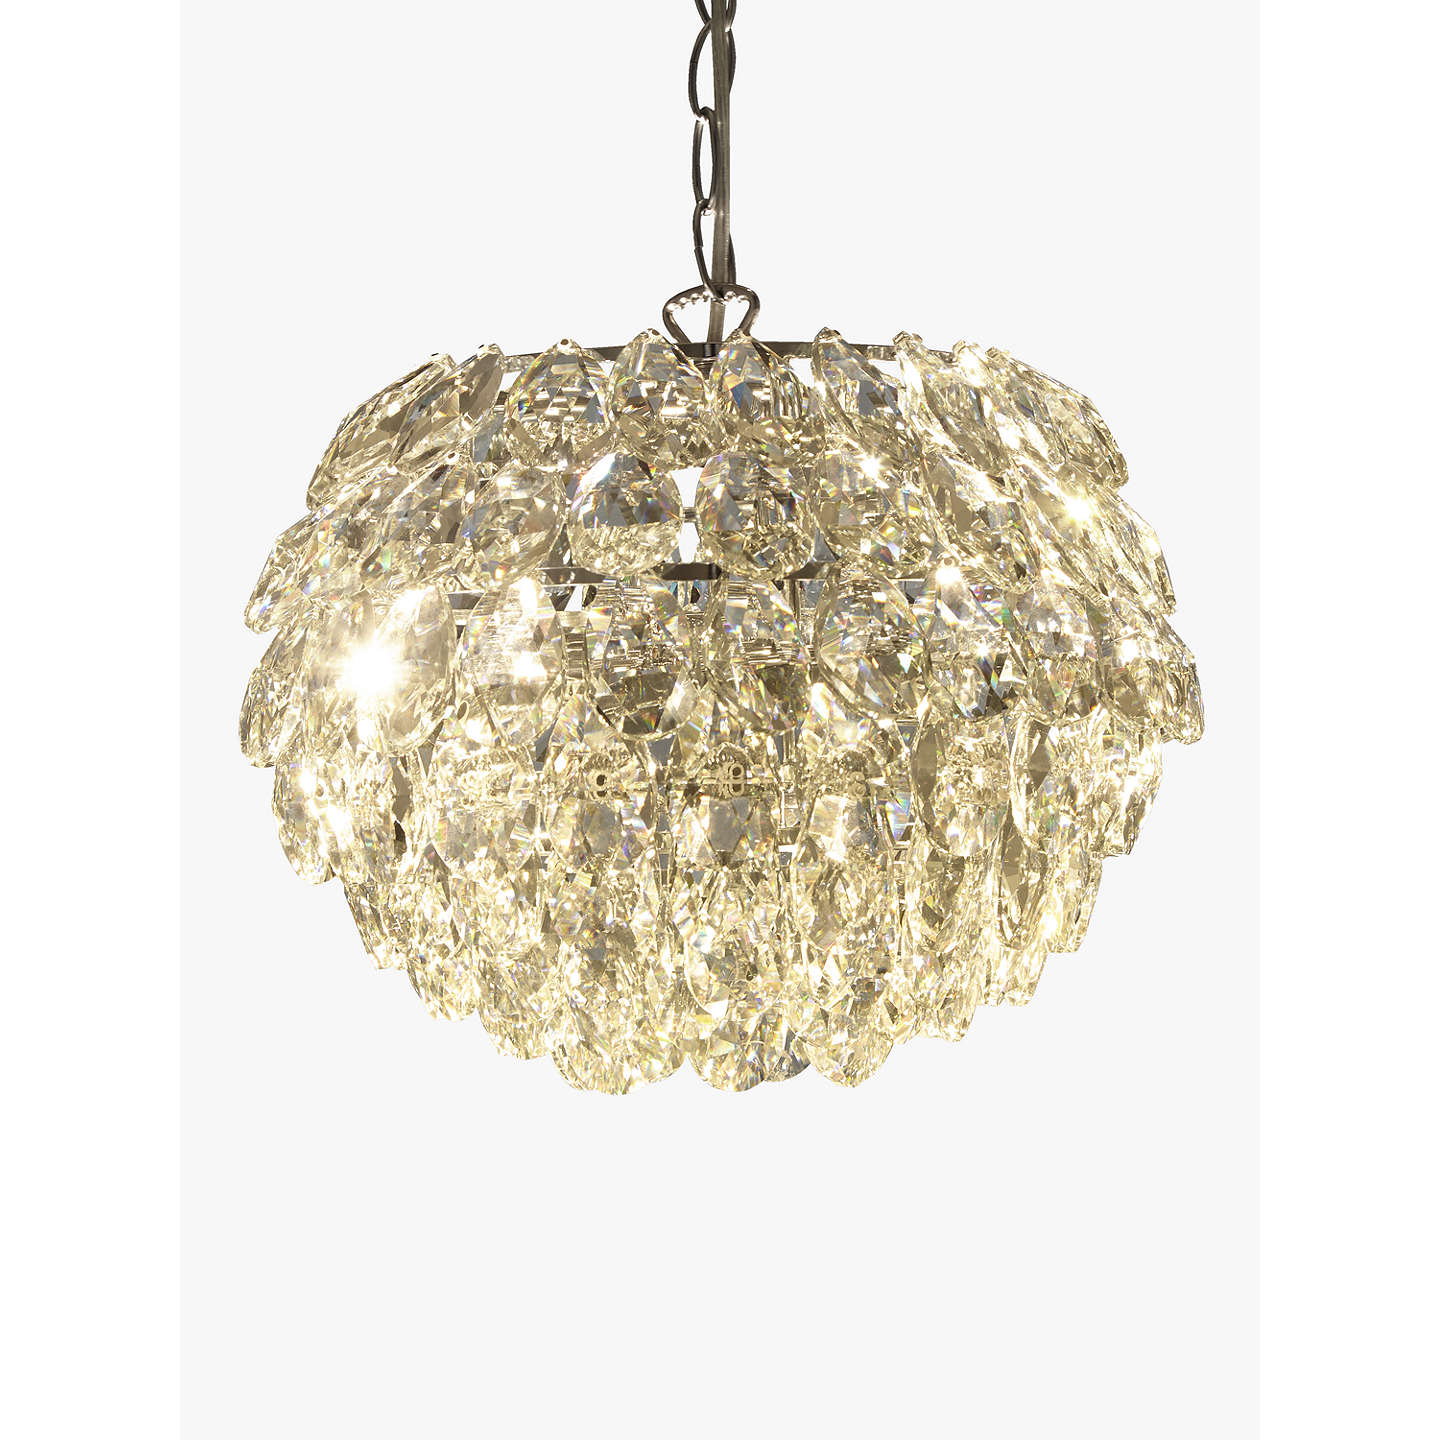 John lewis alexa tear drop ceiling light pendant at john lewis buyjohn lewis alexa tear drop ceiling light pendant online at johnlewis mozeypictures Images